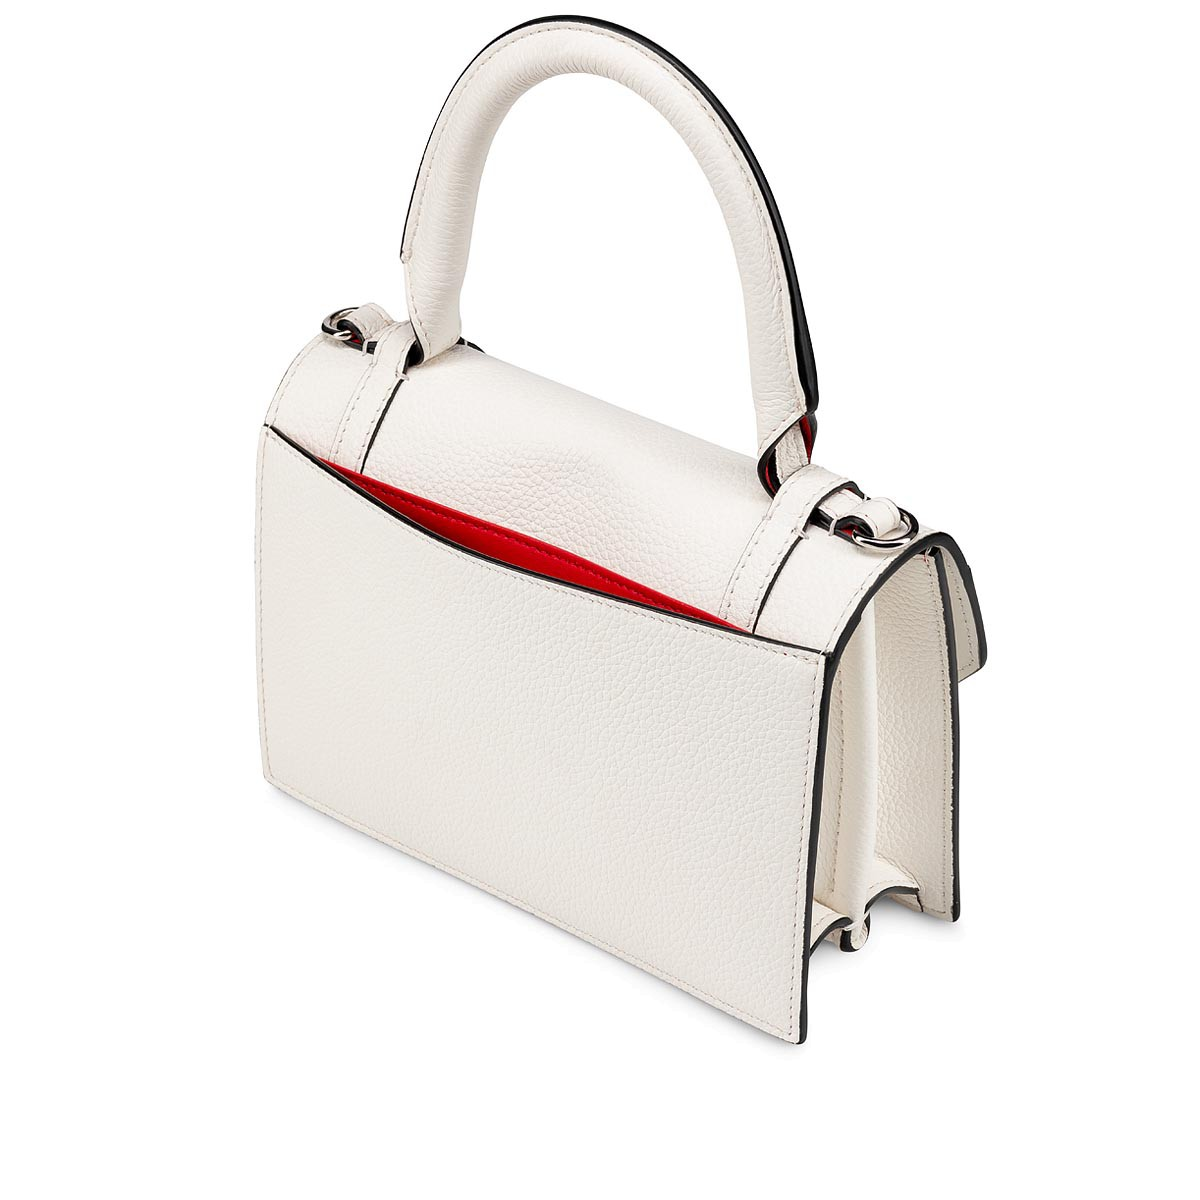 Bags - Elisa Top Handle S - Christian Louboutin